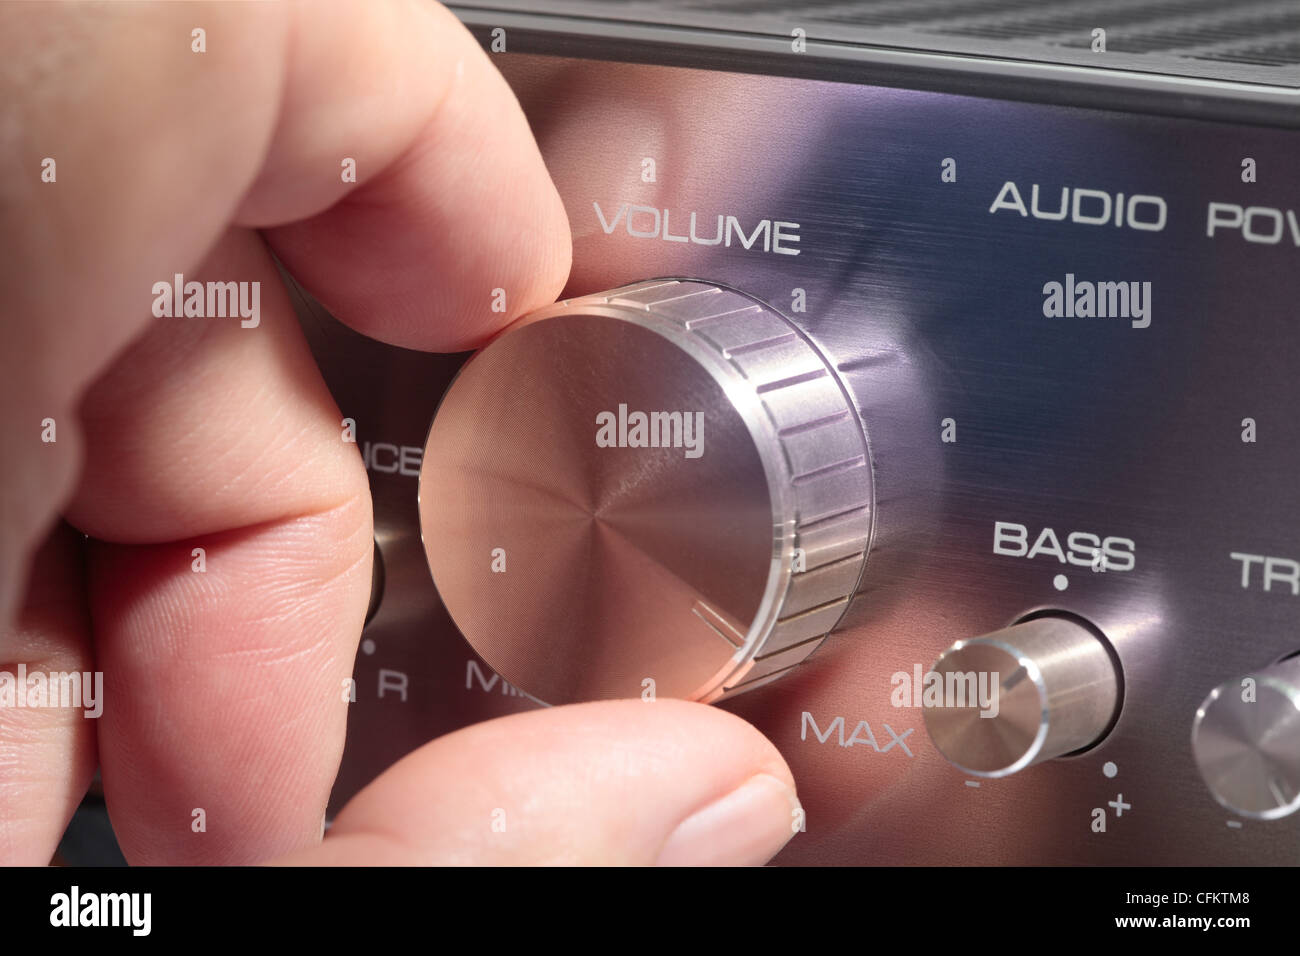 Volume Control knob on amplifier turned up full - Stock Image